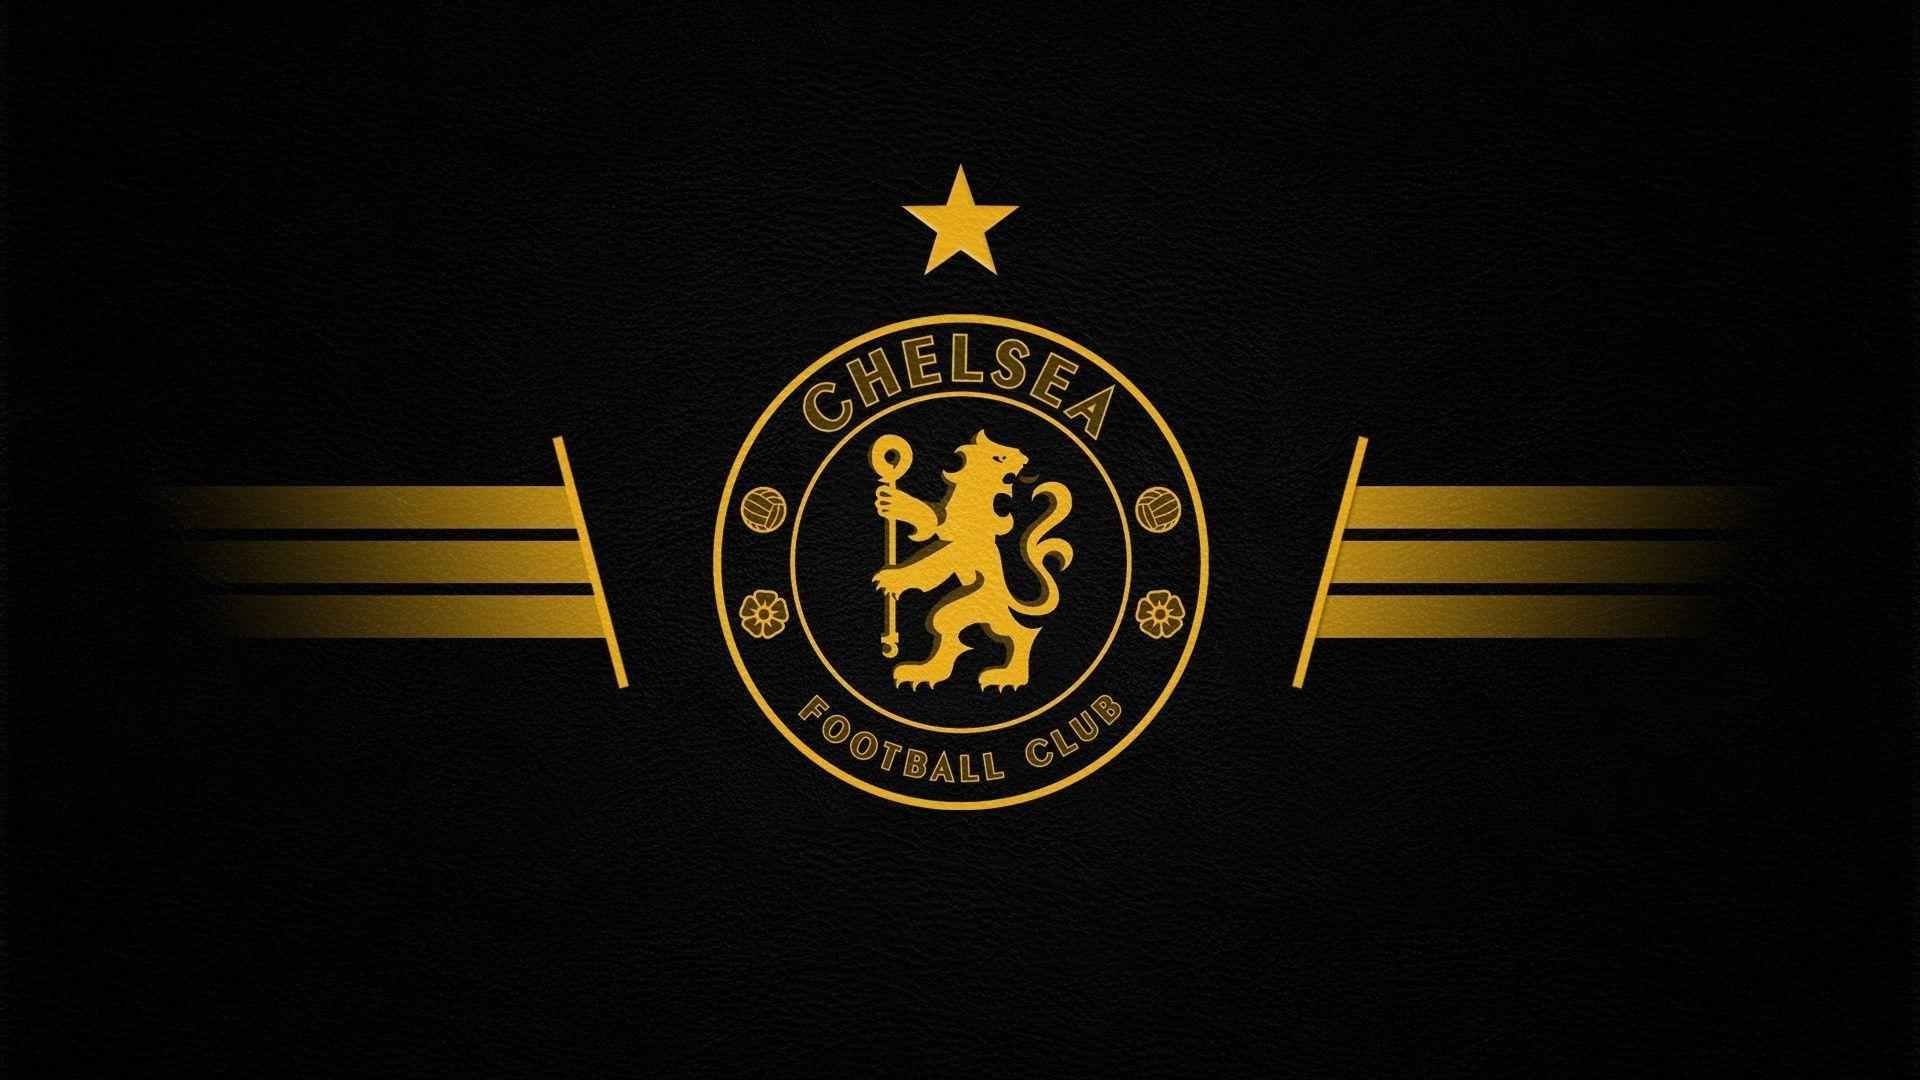 Chelsea Fc Wallpapers 1080p